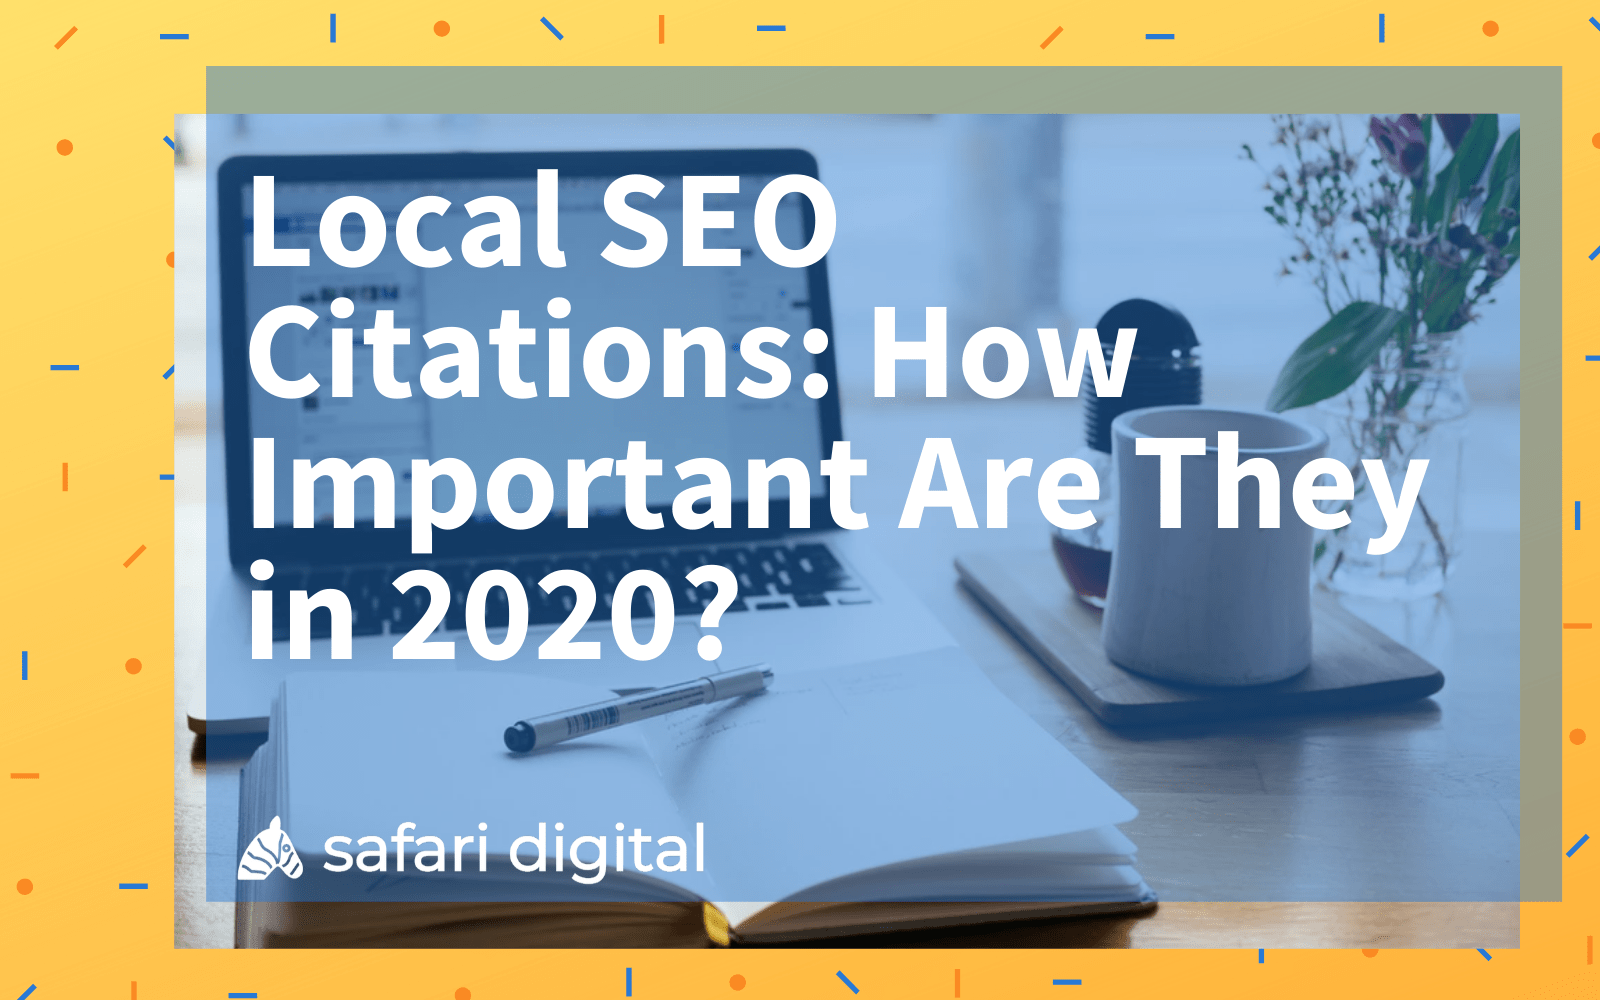 local SEO citations article cover image